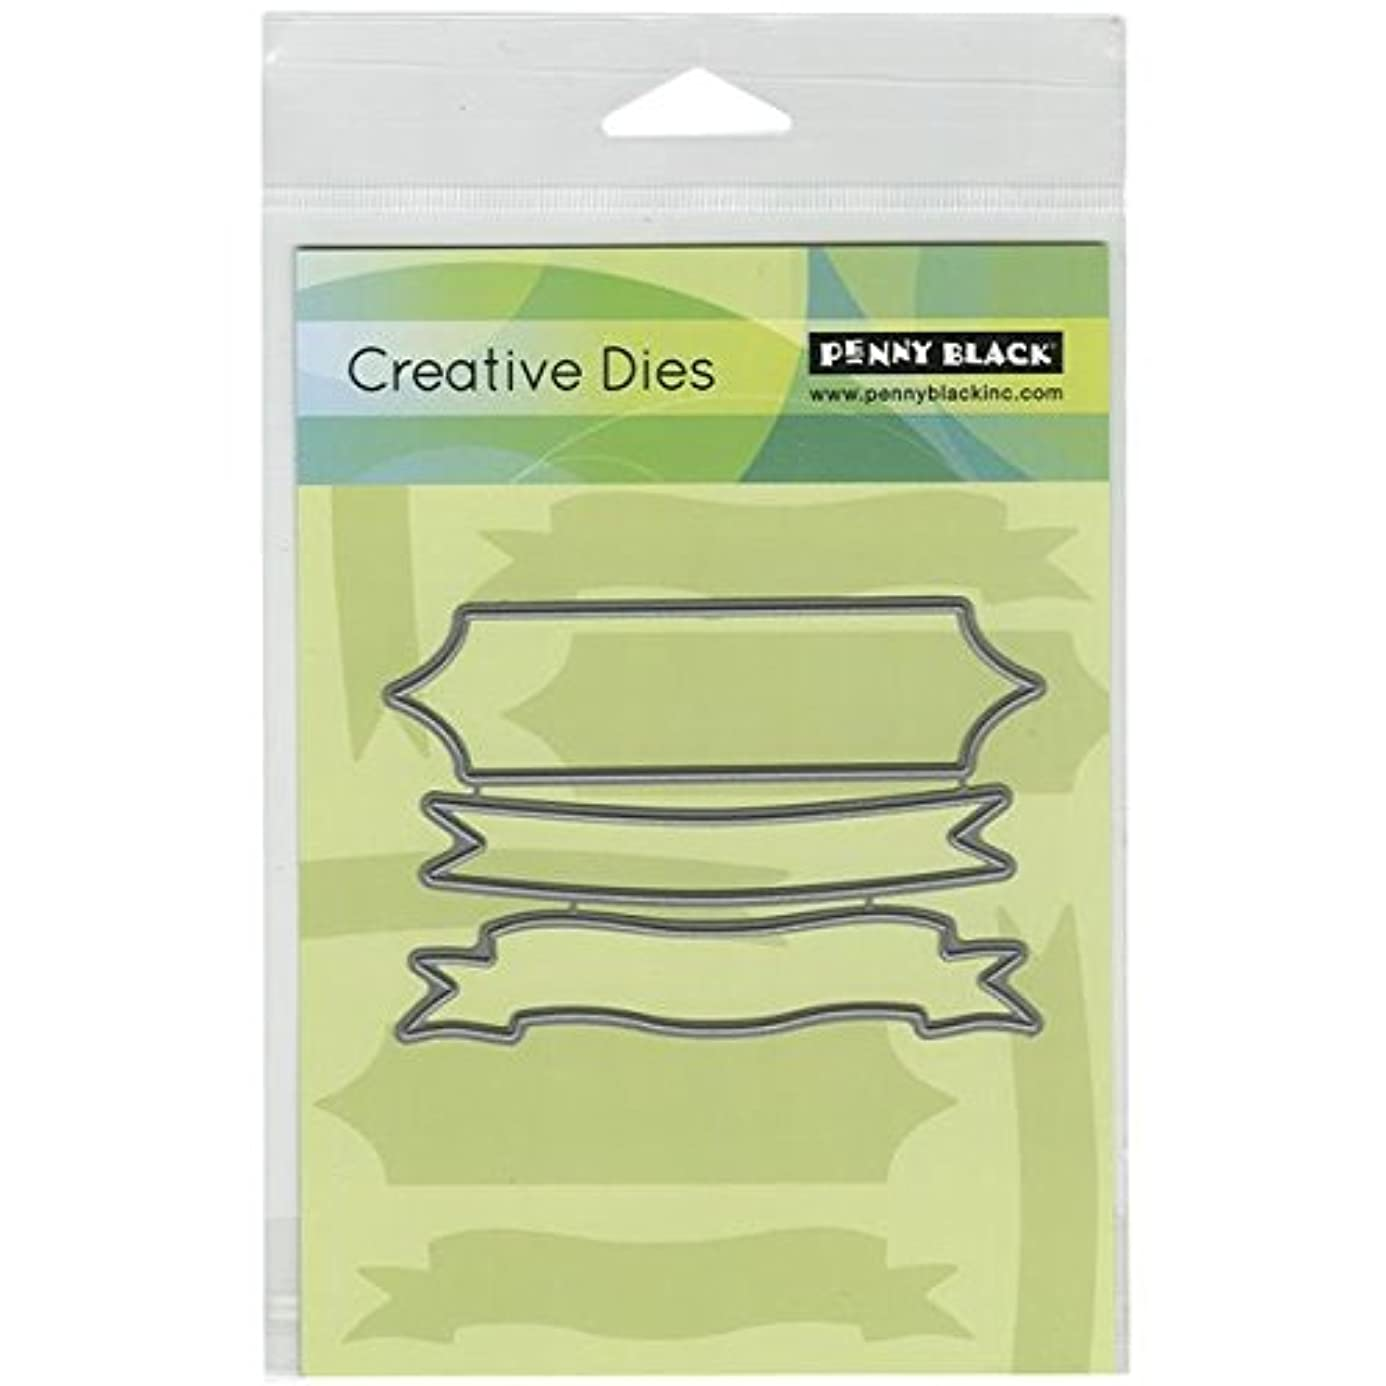 Penny Black Triple Banner Decorative Dies owh7524356